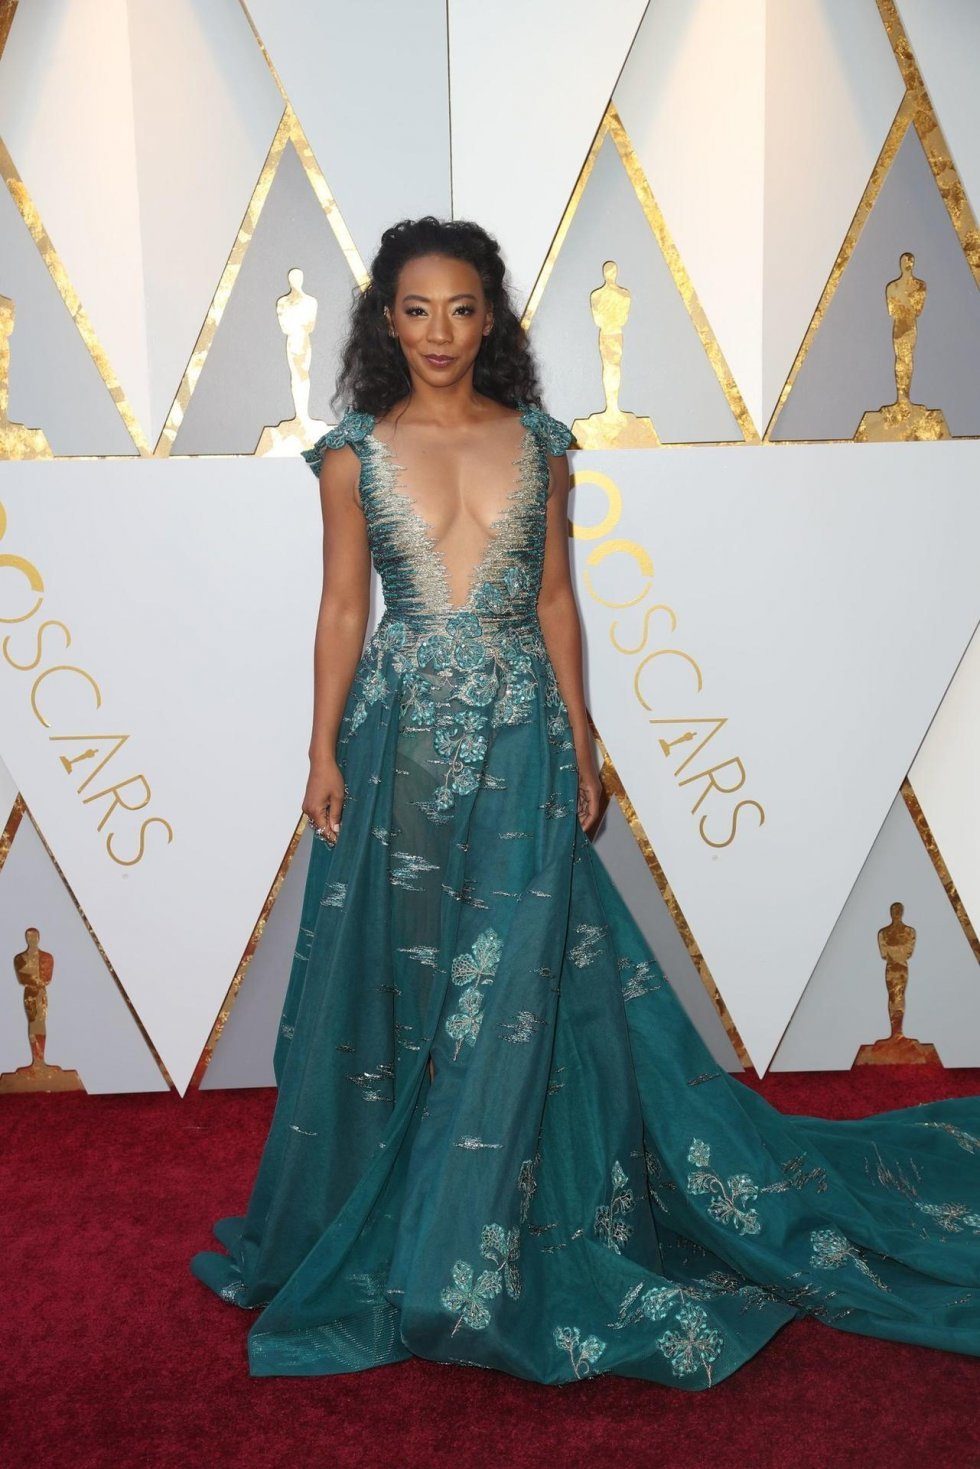 The New York Times - Oscars Red Carpet Fashion: Hvilken stjerne bar hvad?